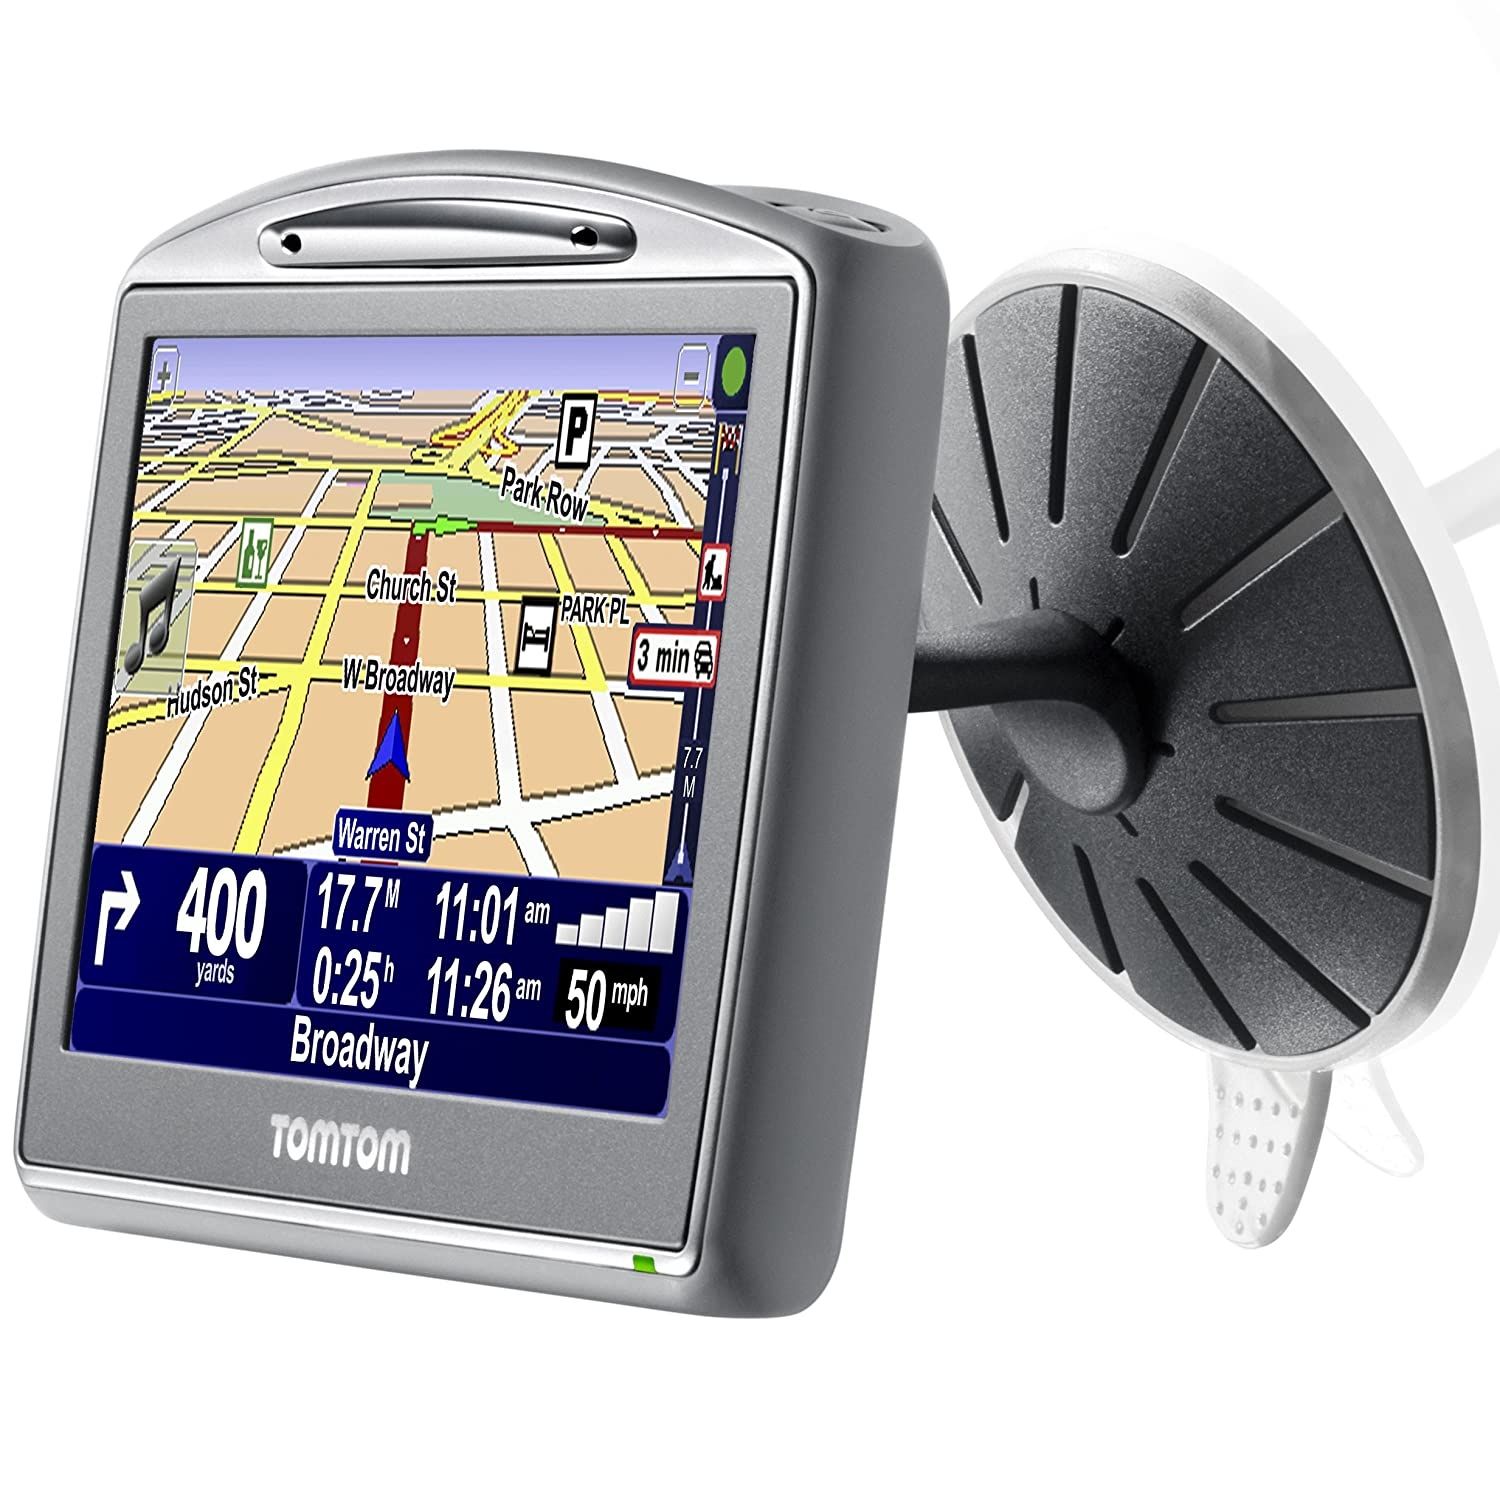 Amazoncom TomTom GO  Portable GPS Vehicle Navigator - Tomtom gps usa map download free